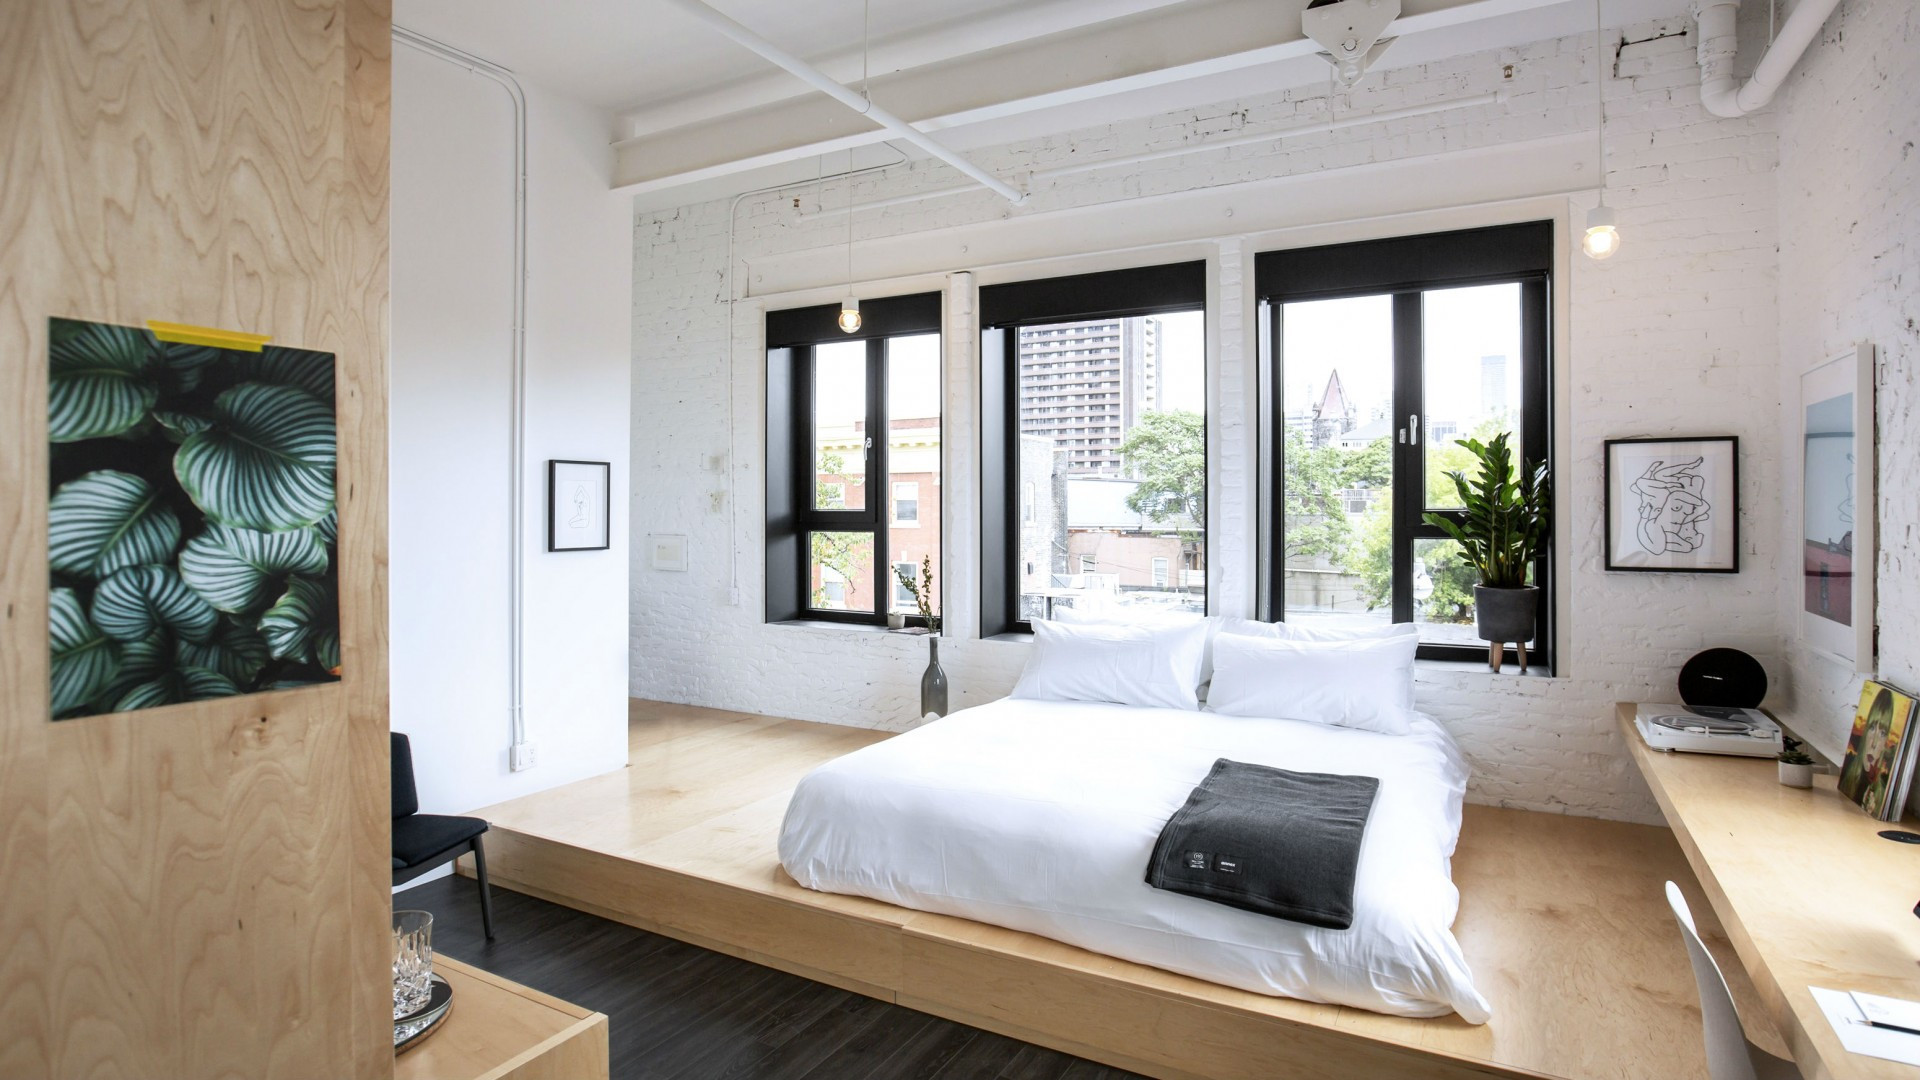 The best Toronto hotels for a staycation | loft style room at the Annex Hotel